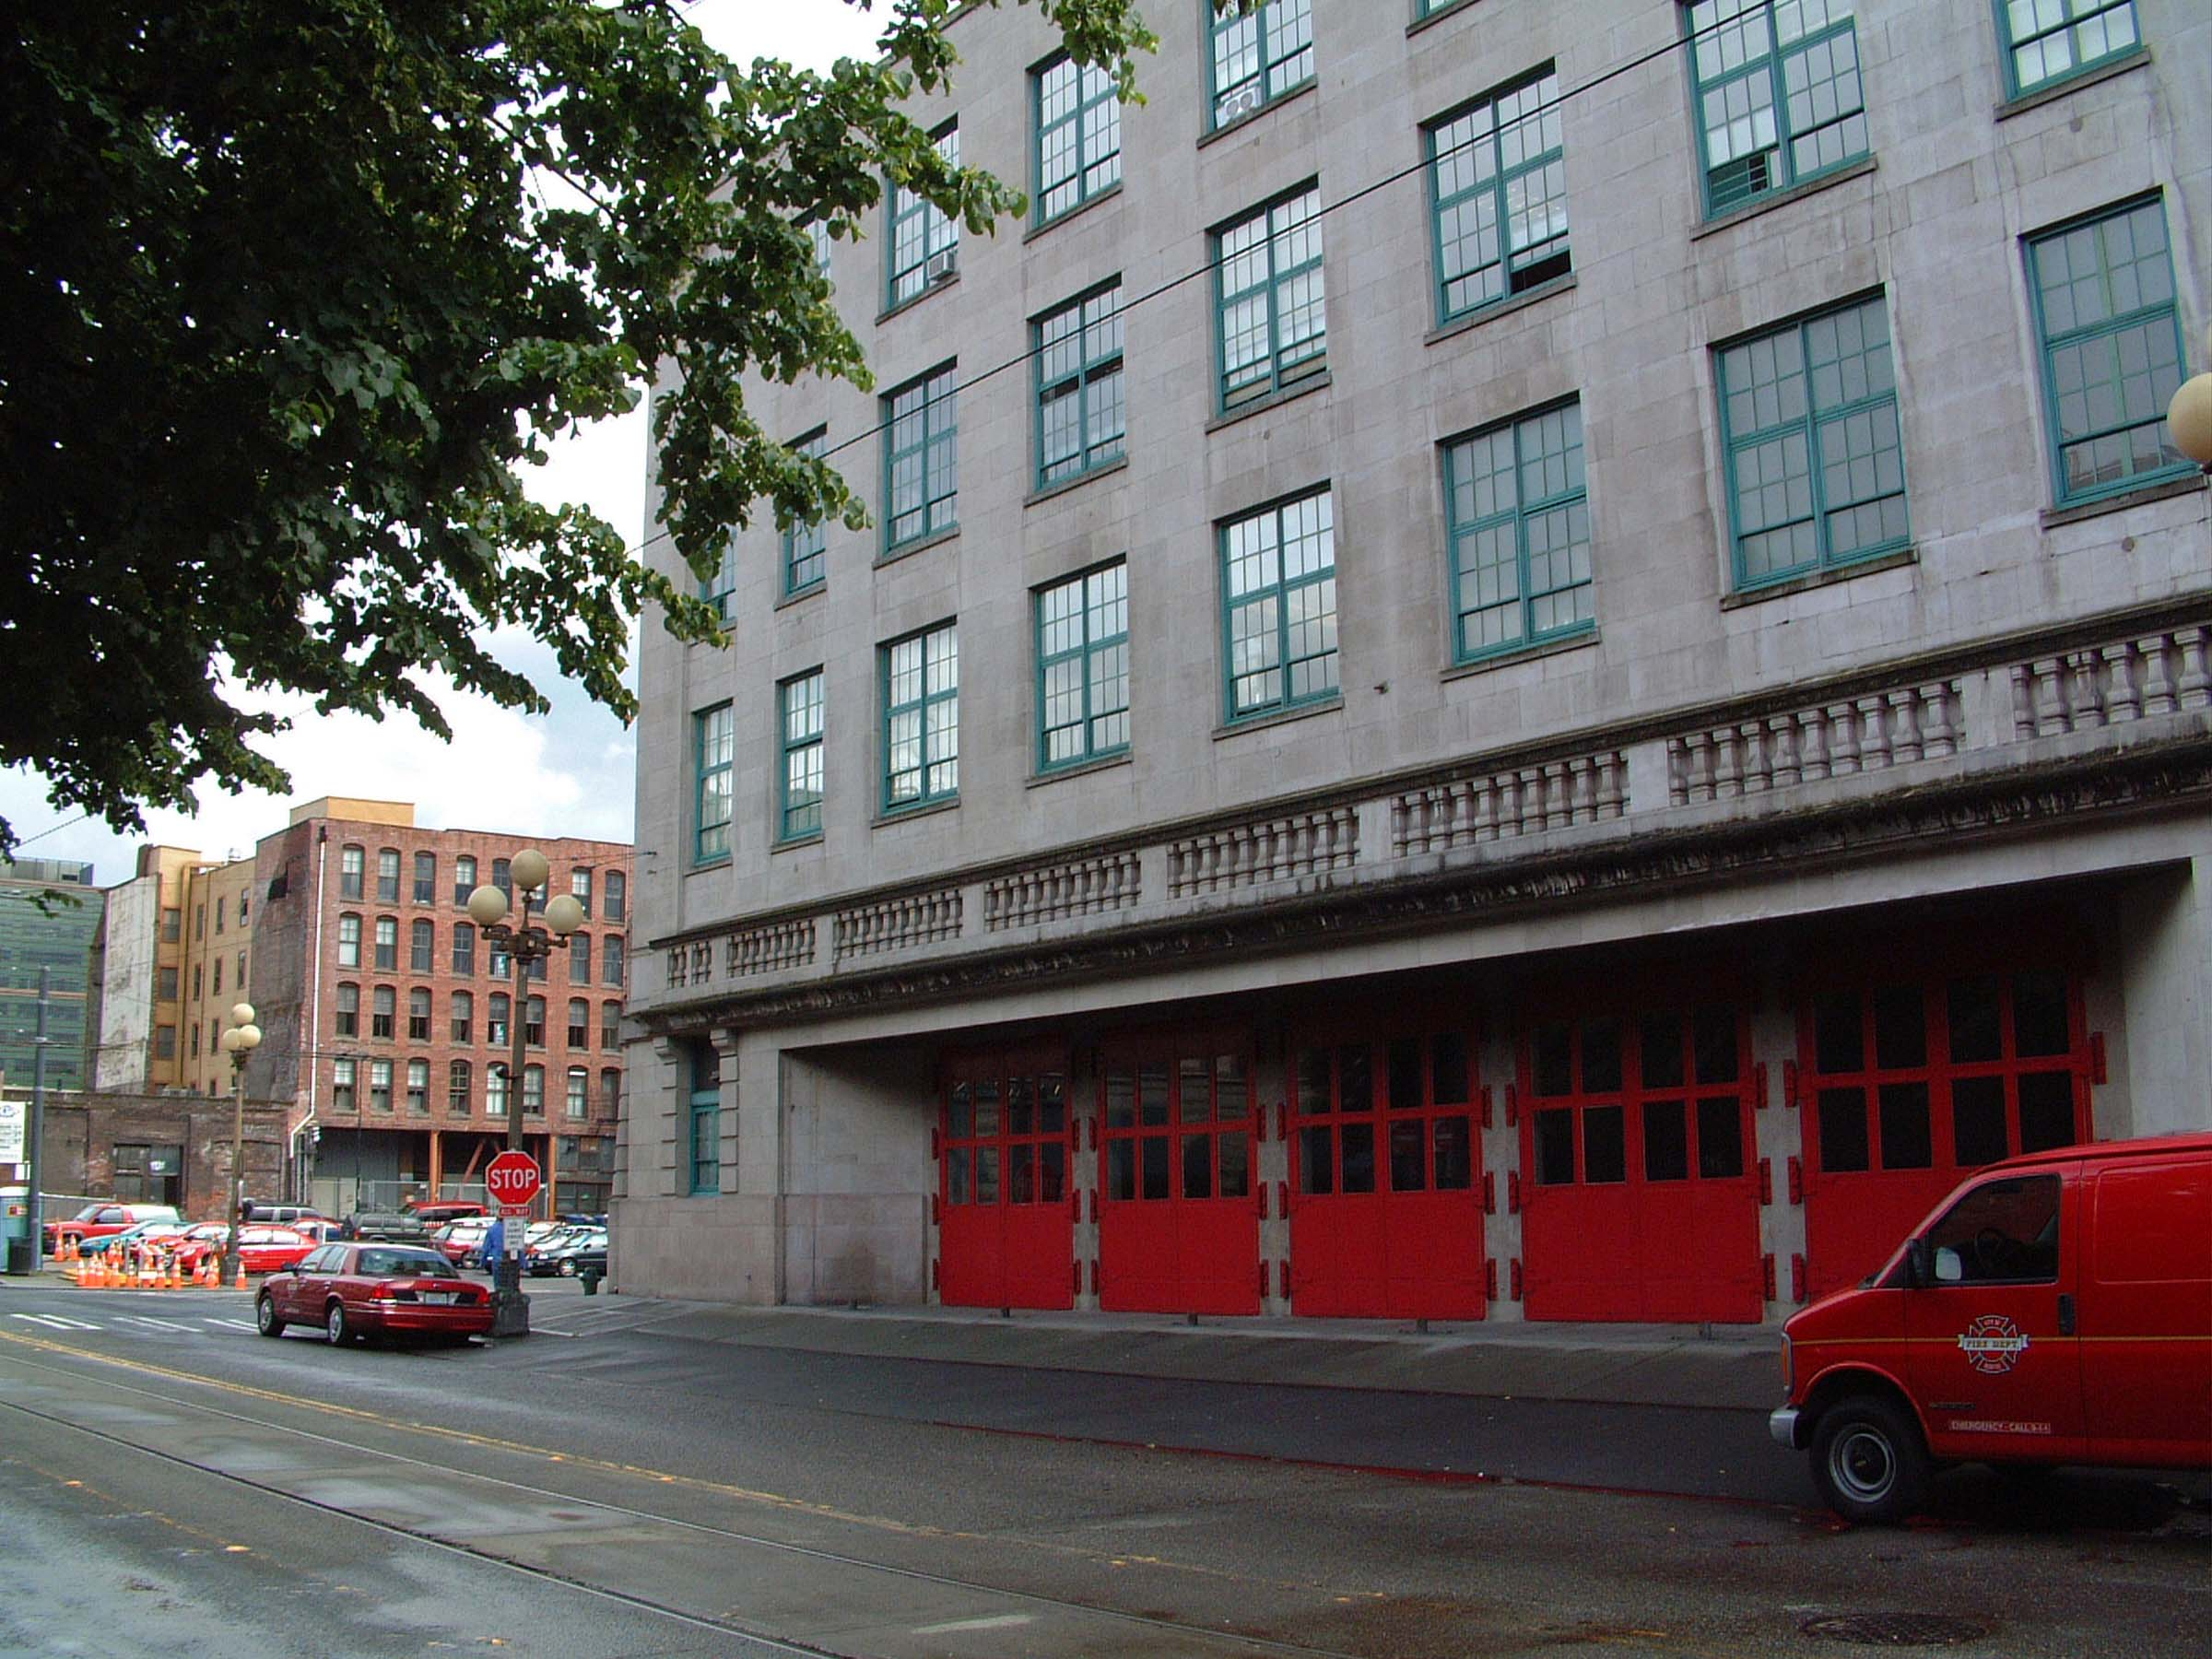 Fire Station #10